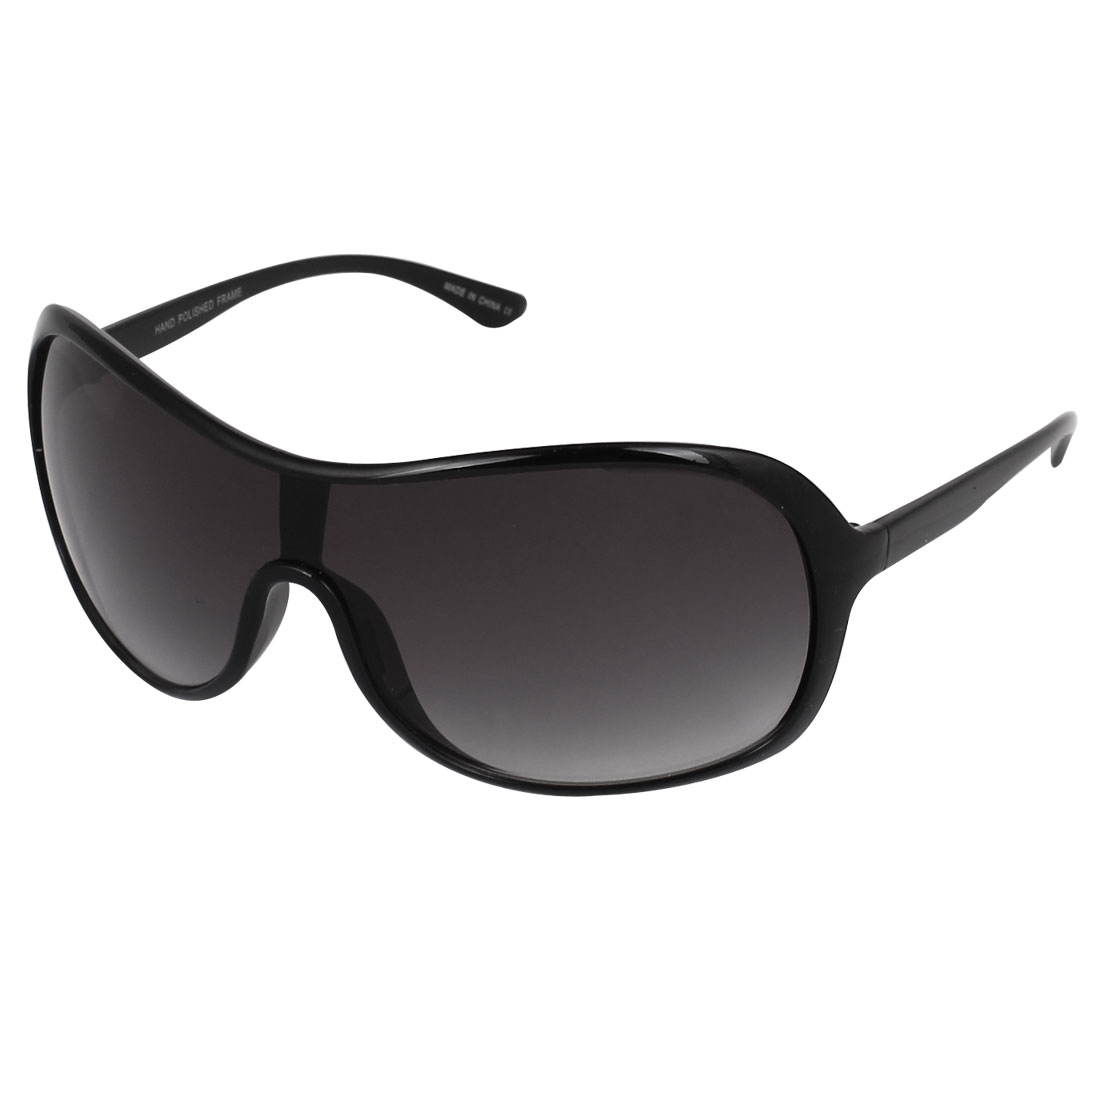 Plastic Full Rim Lady Single Bridge Eyewear Sunglasses Black